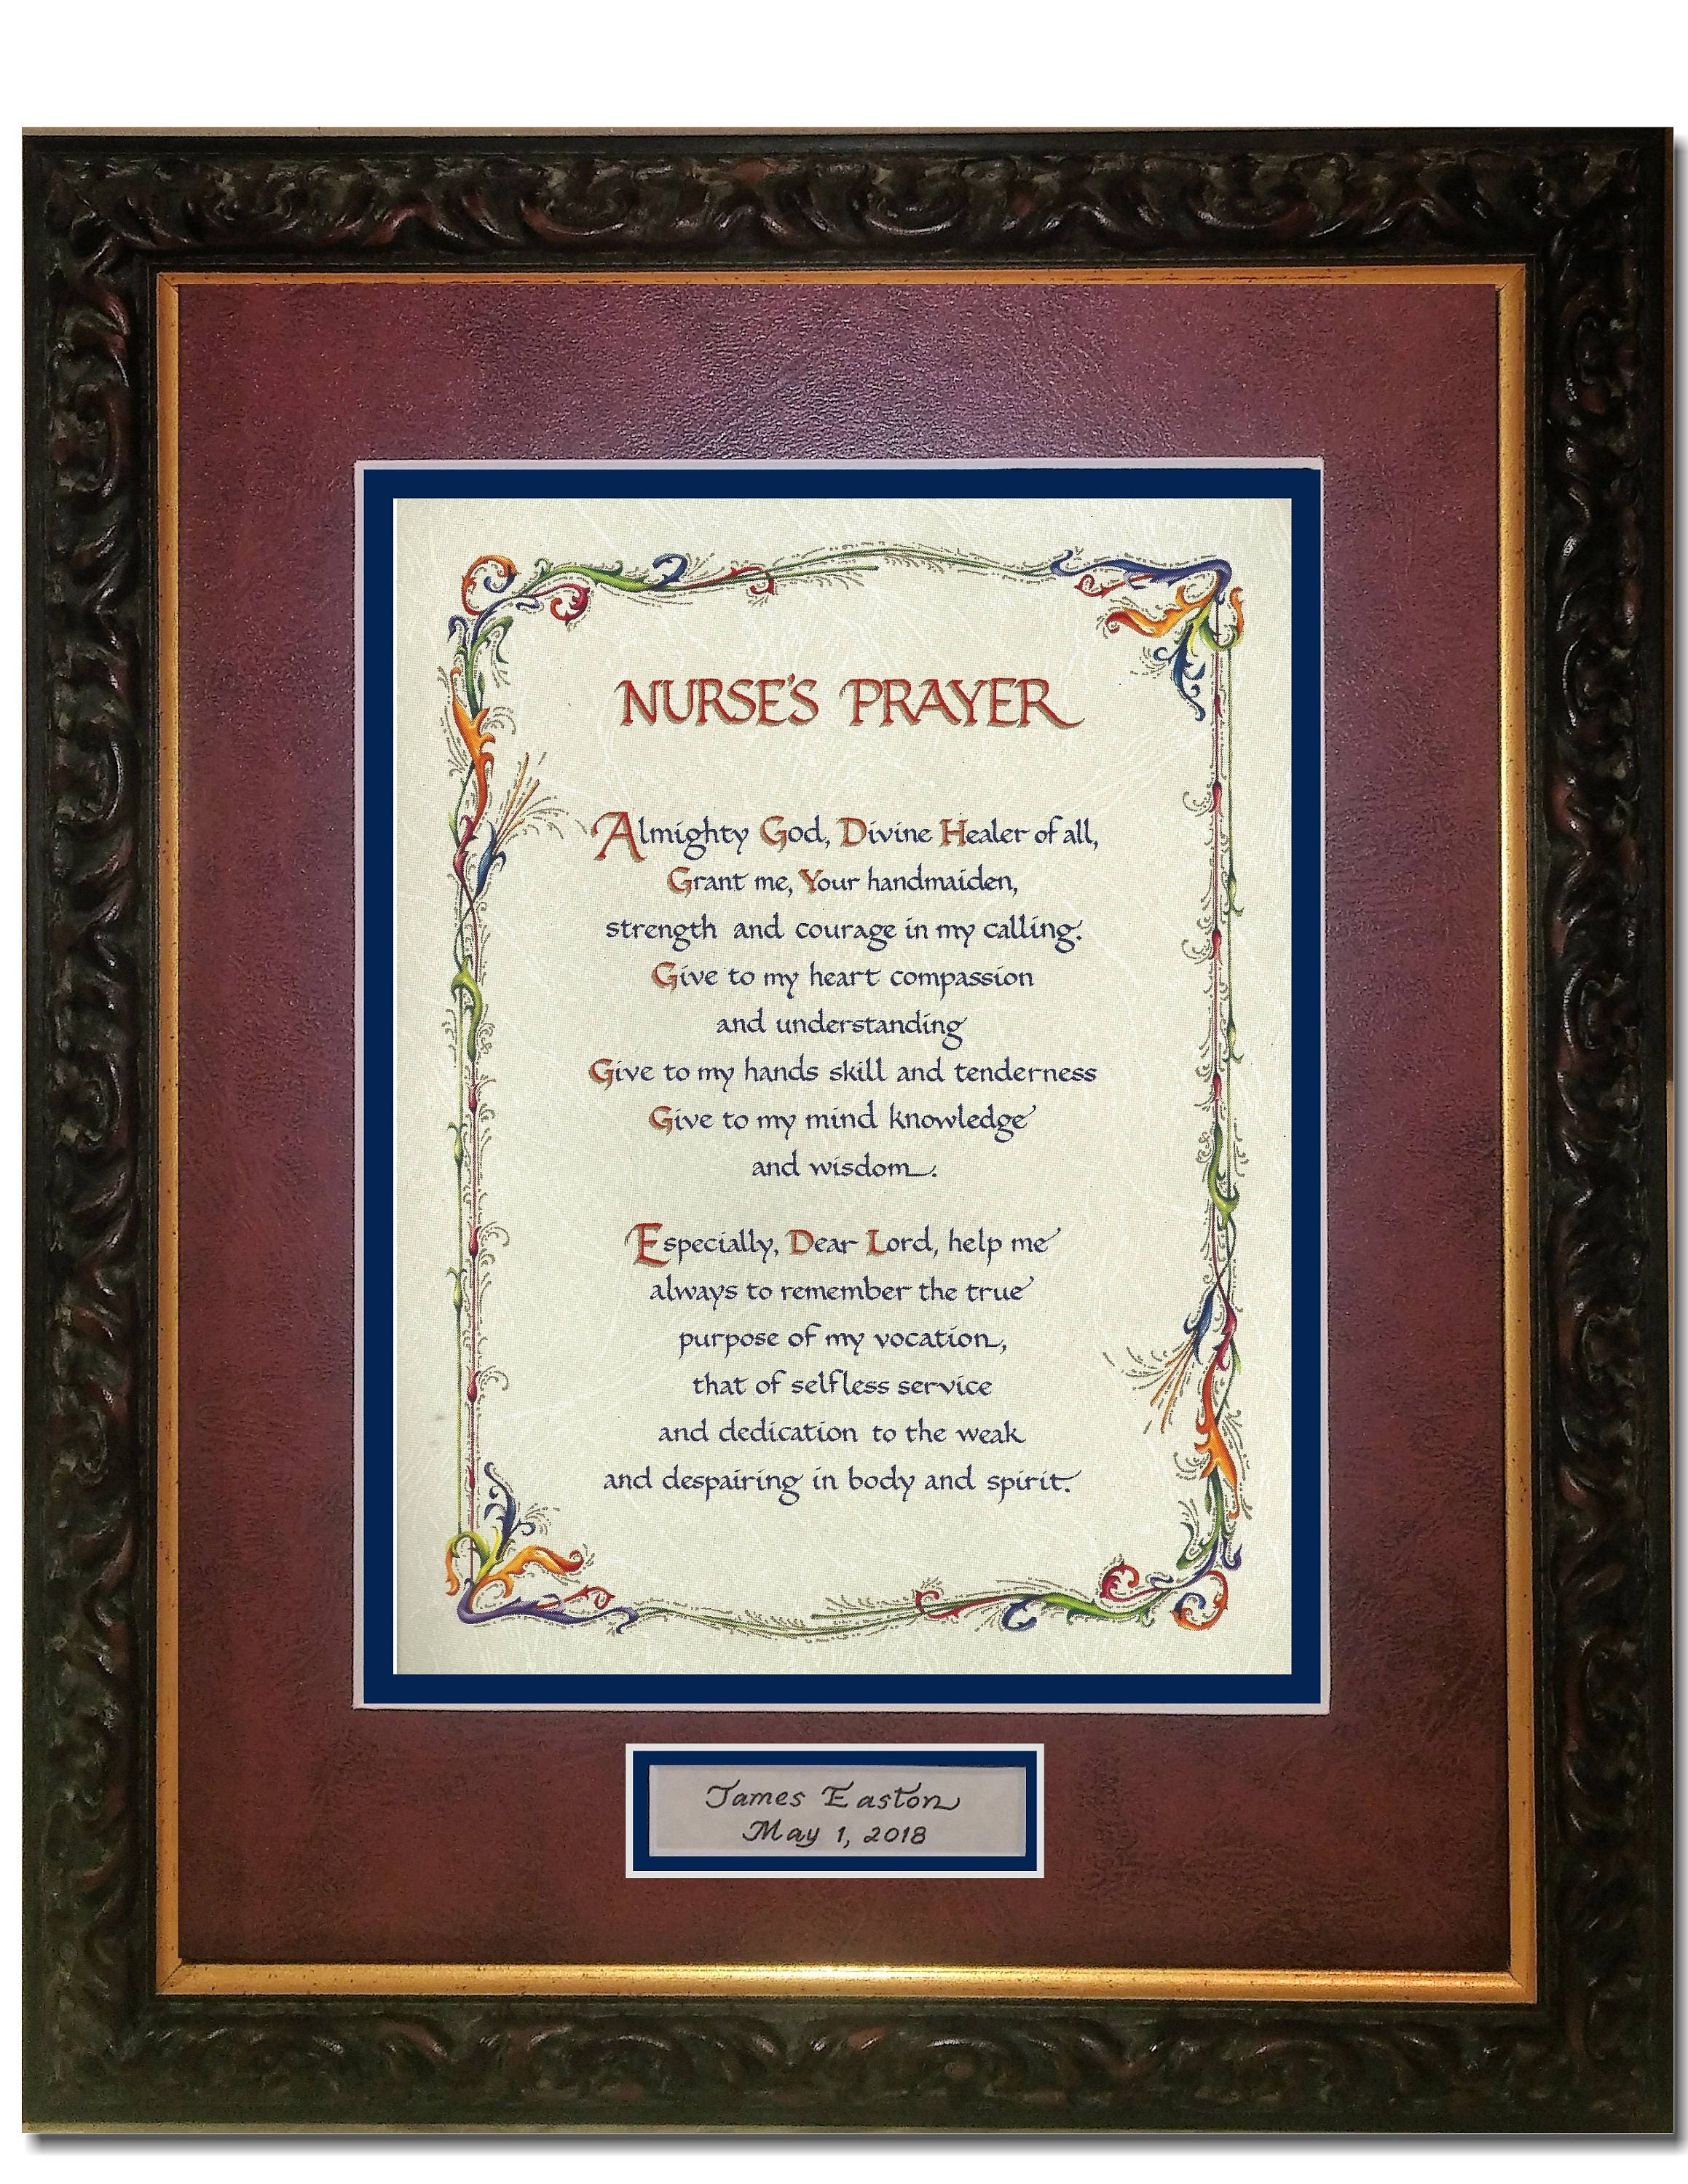 Personalized Nurses Prayer 8X10 double matted with dark